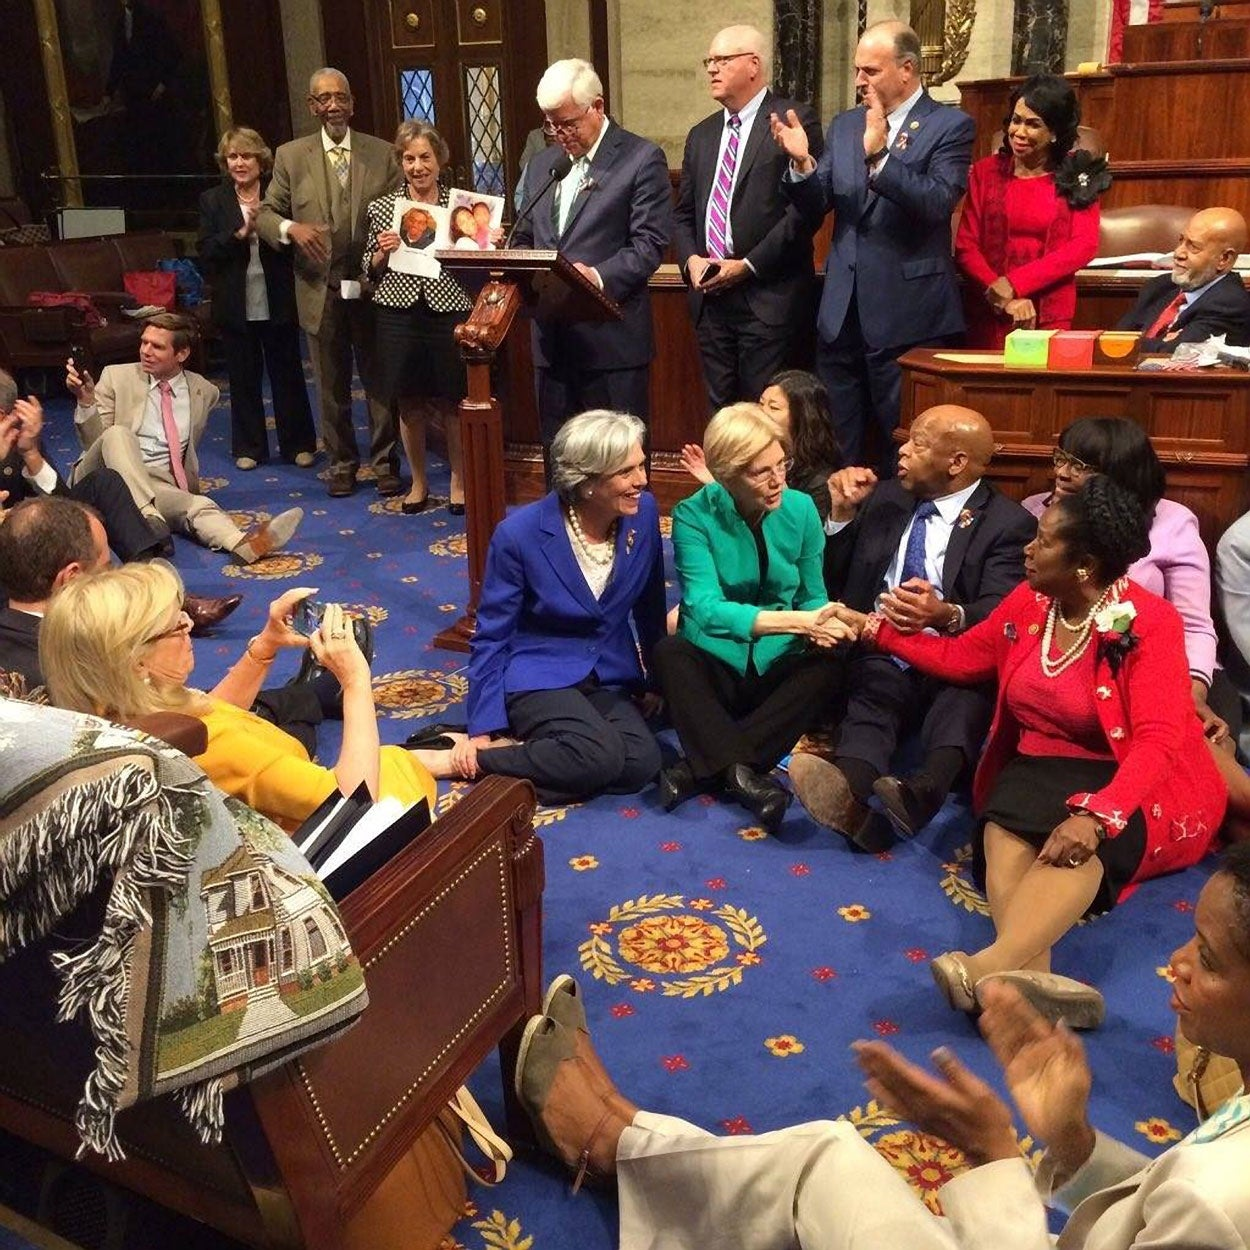 Democrats staged a 24-hour sit-in on the House floor in an effort to force a vote on gun control. (Photo: John Lewis/ZUMA Press/Newscom)